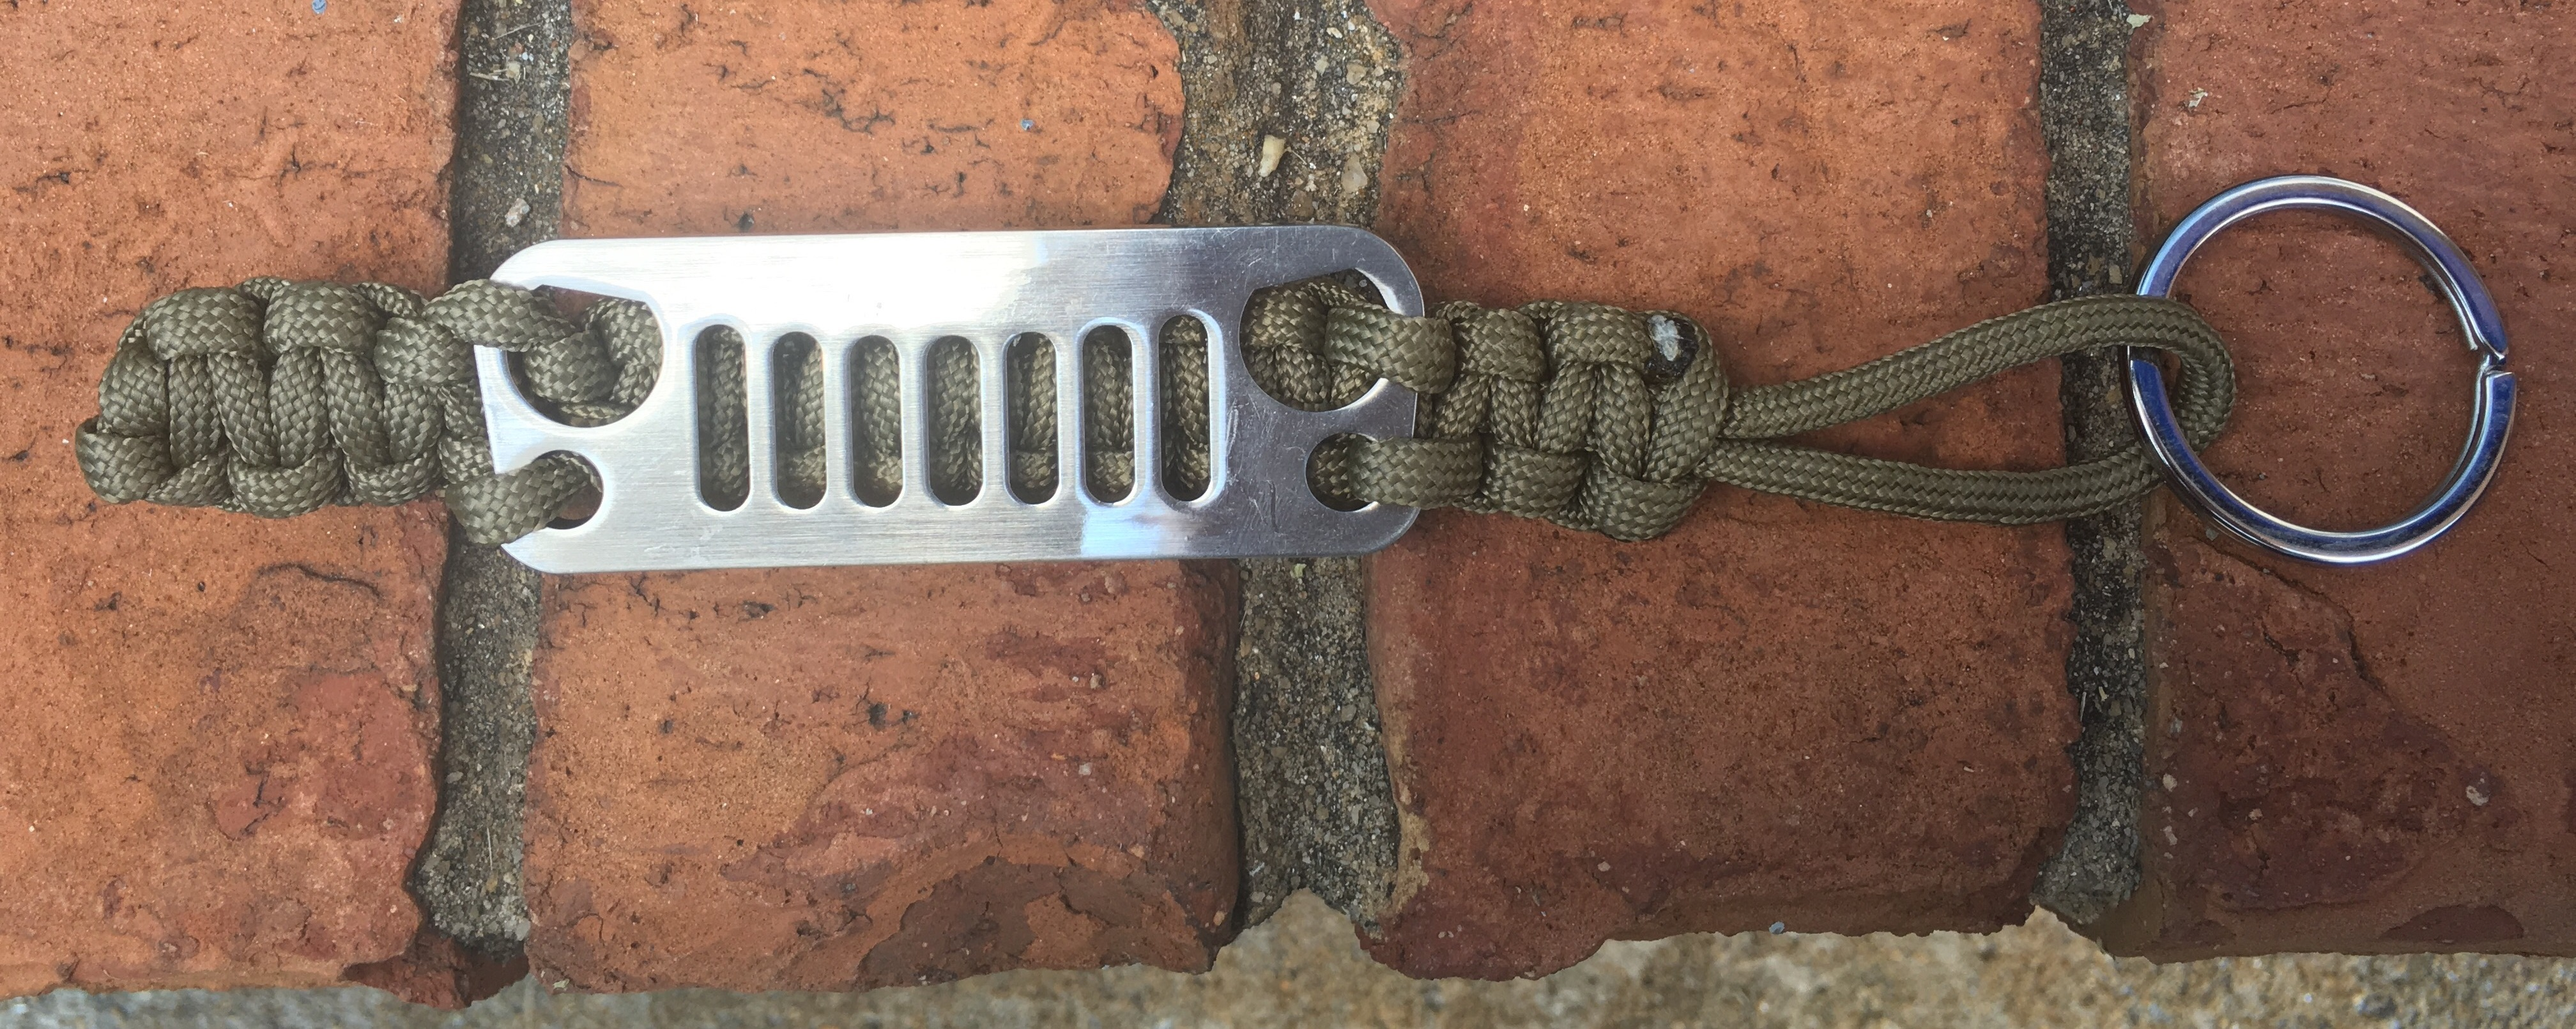 Jeep Grille Paracord Keychain in Olive